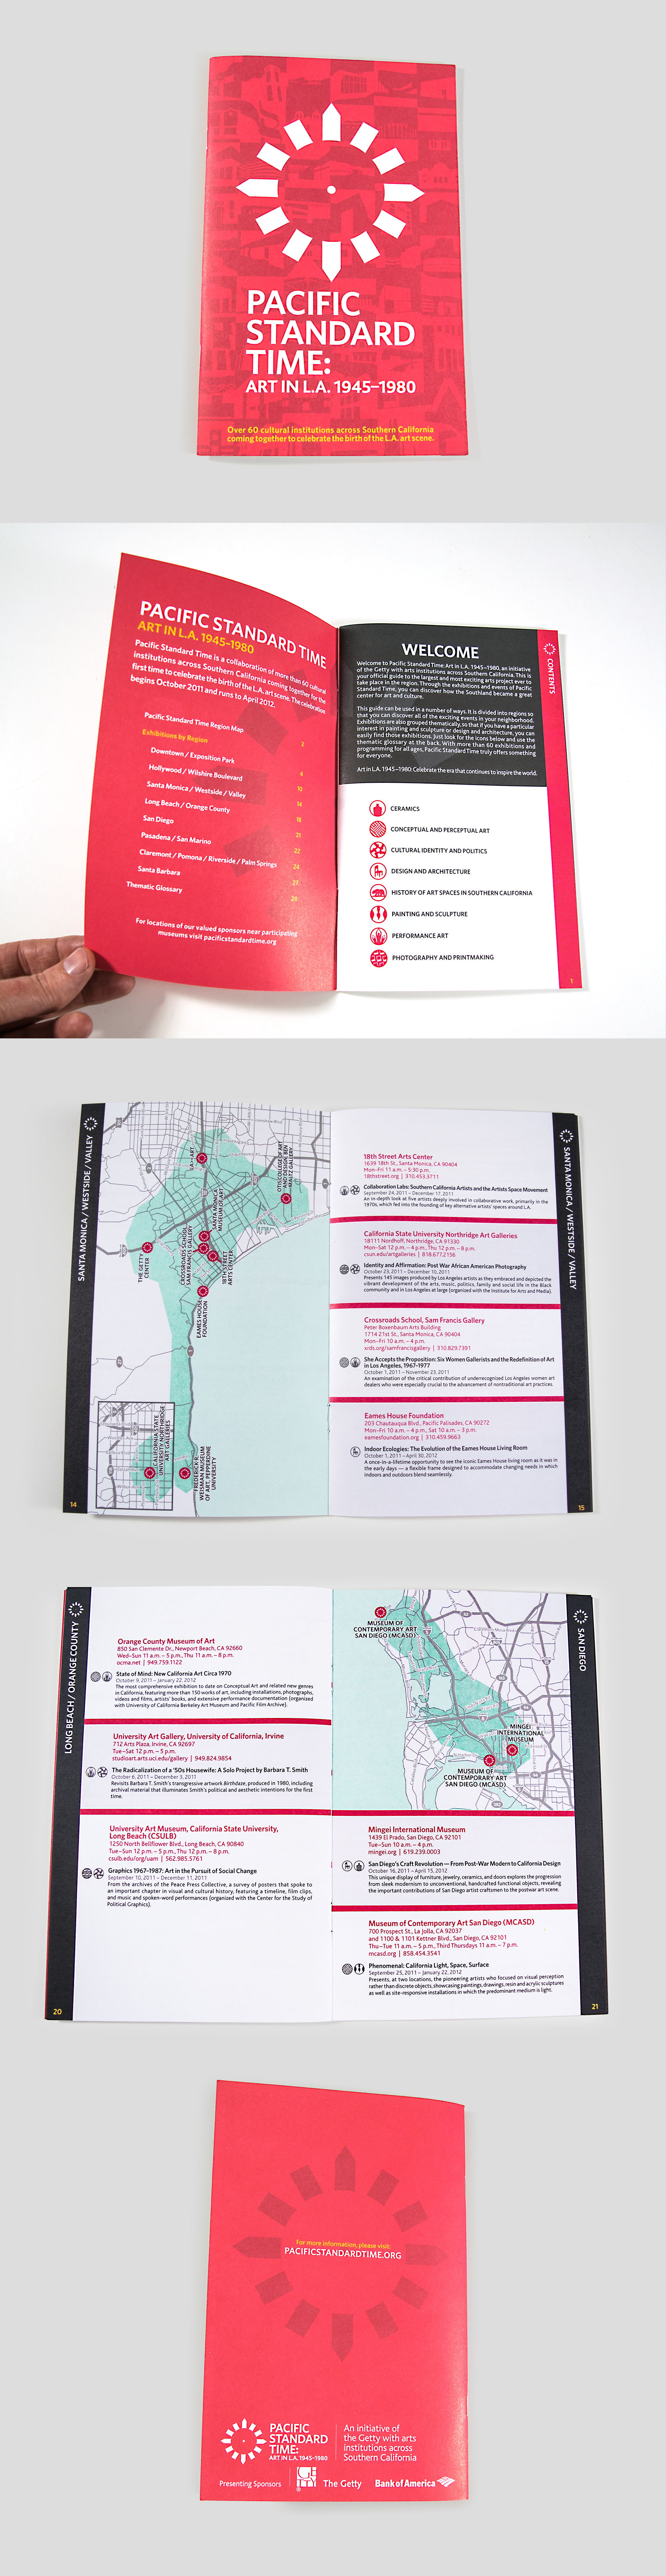 Pacific Standard Time Guide Book: Layout   Production